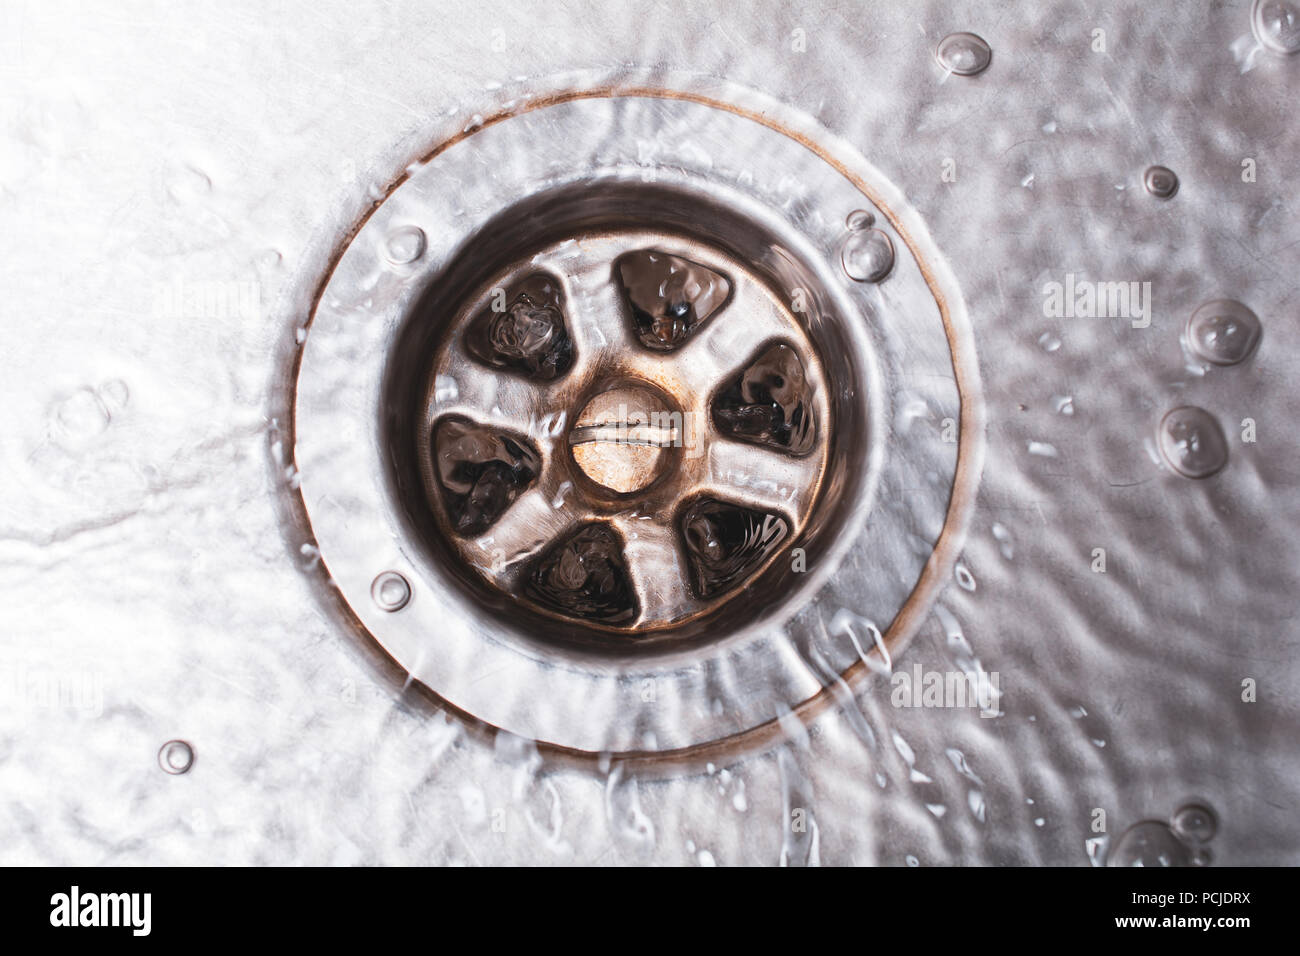 Bright Dirty Drain Of A Kitchen Sink With Flowing Water, Top Down View Stock Photo